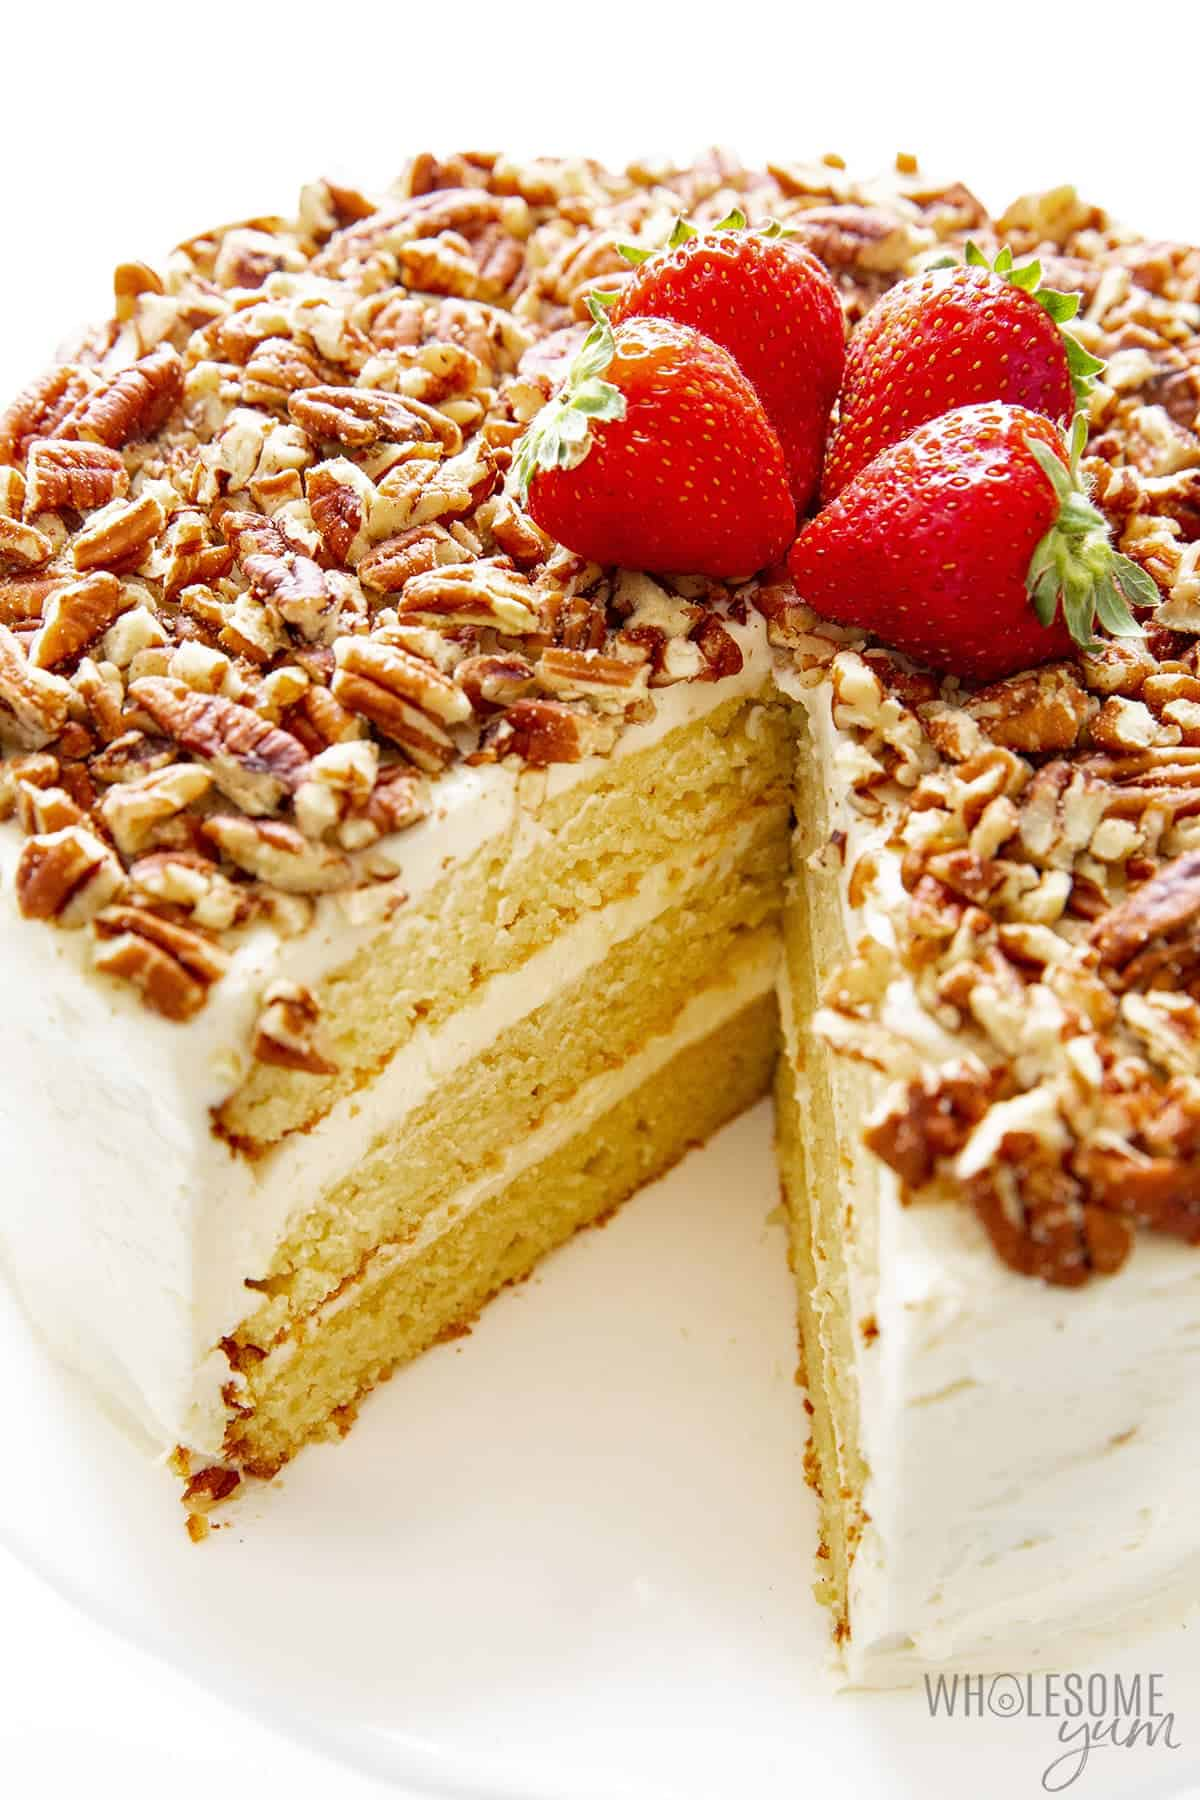 Sugar free vanilla cake topped with pecans and strawberries